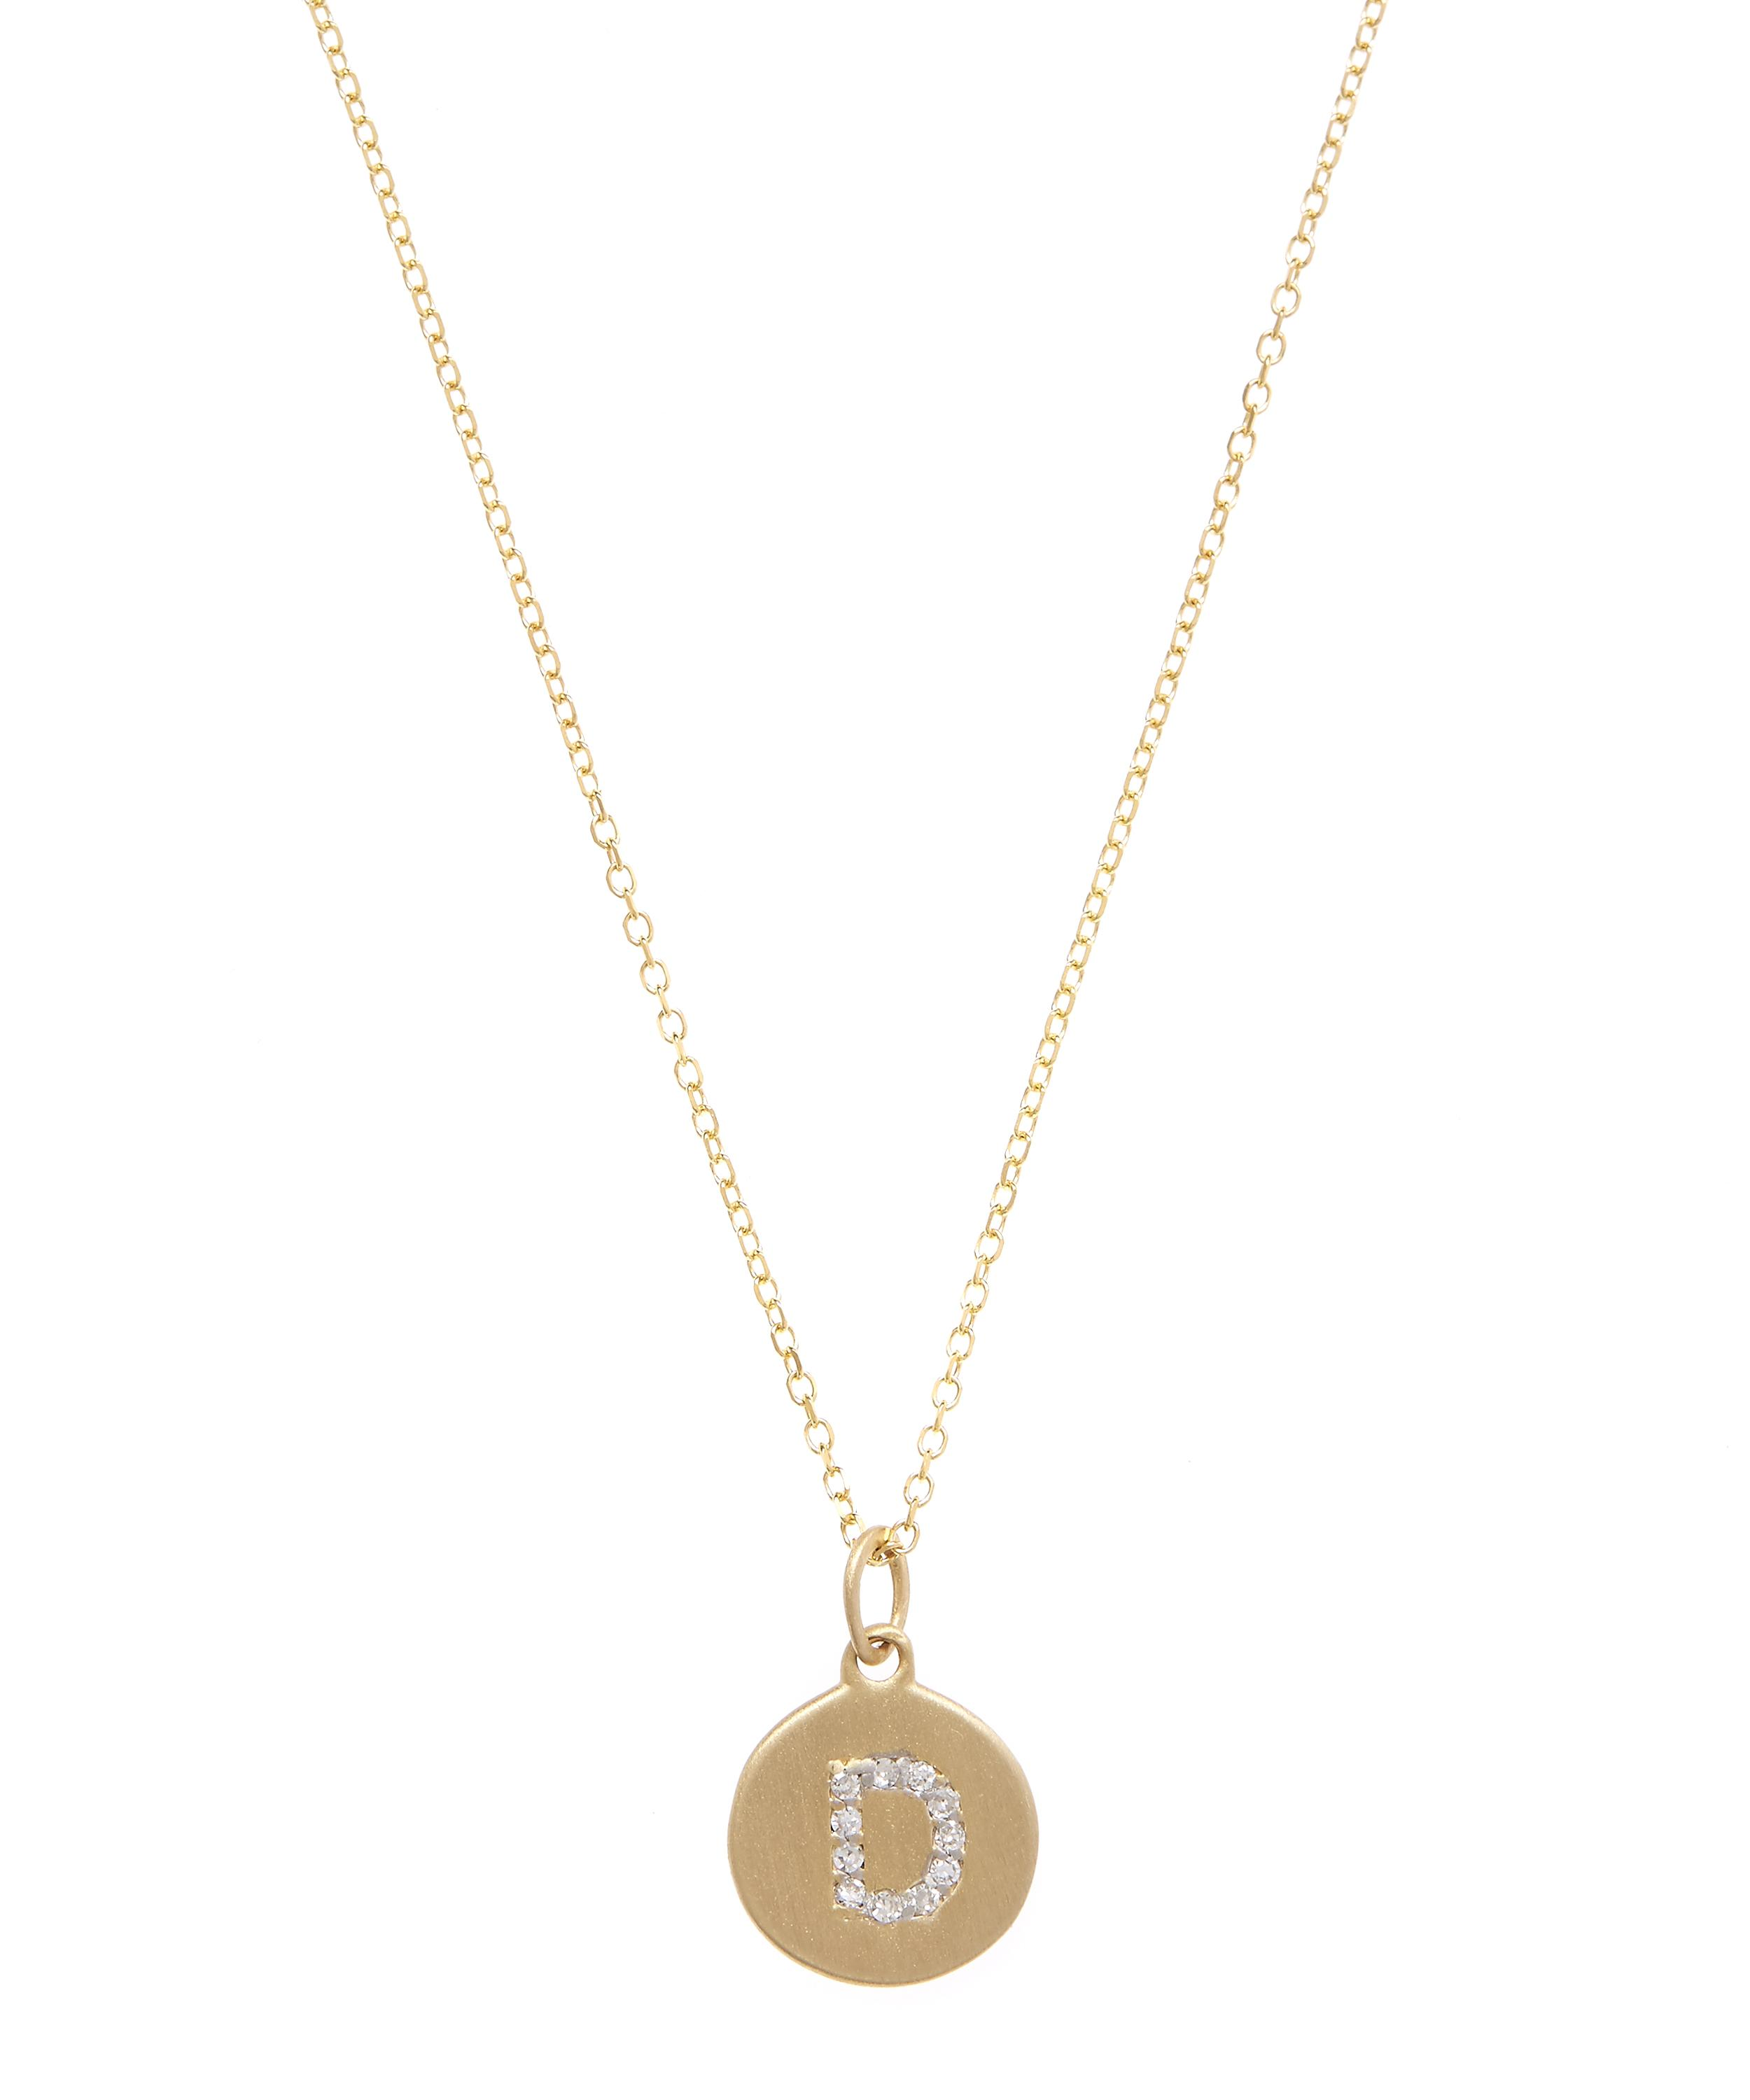 Gold and diamond letter d disc pendant necklace liberty london gold and diamond letter d disc pendant necklace aloadofball Image collections